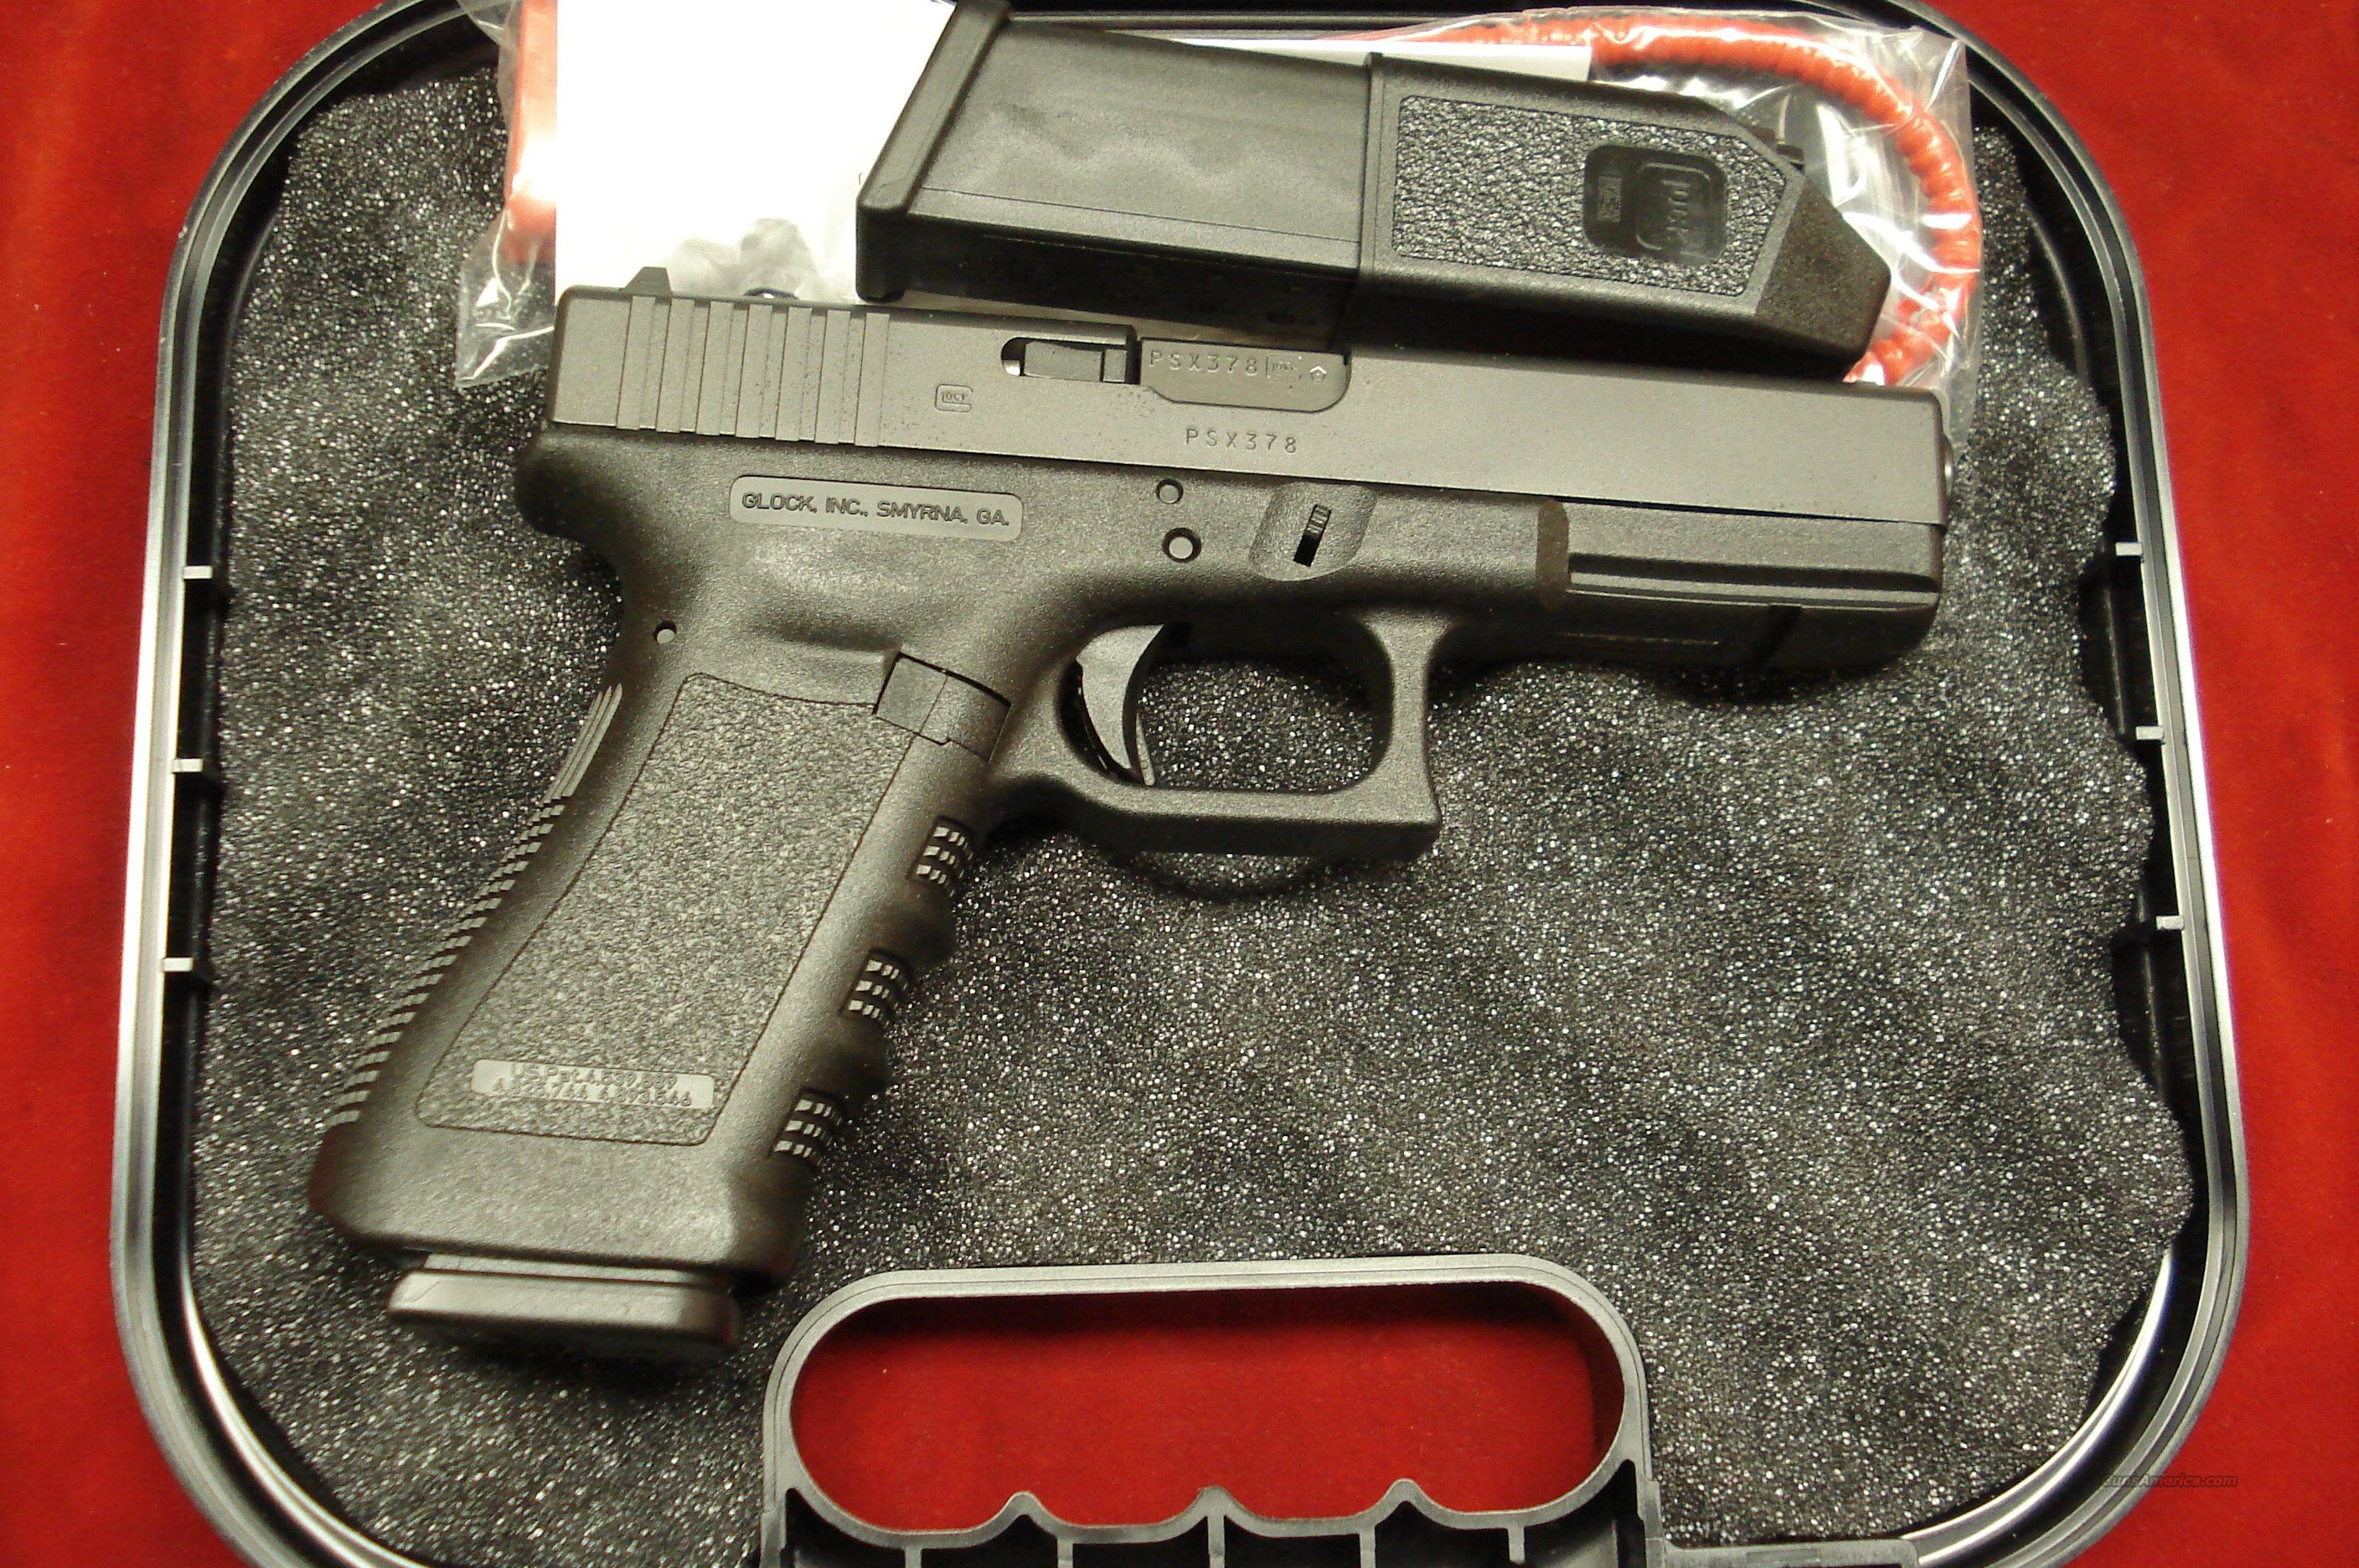 GLOCK MODEL 22 40 CAL. WITH  HIGH CAPACITY MAGAZINES NEW  (PI2250203)  Guns > Pistols > Glock Pistols > 22